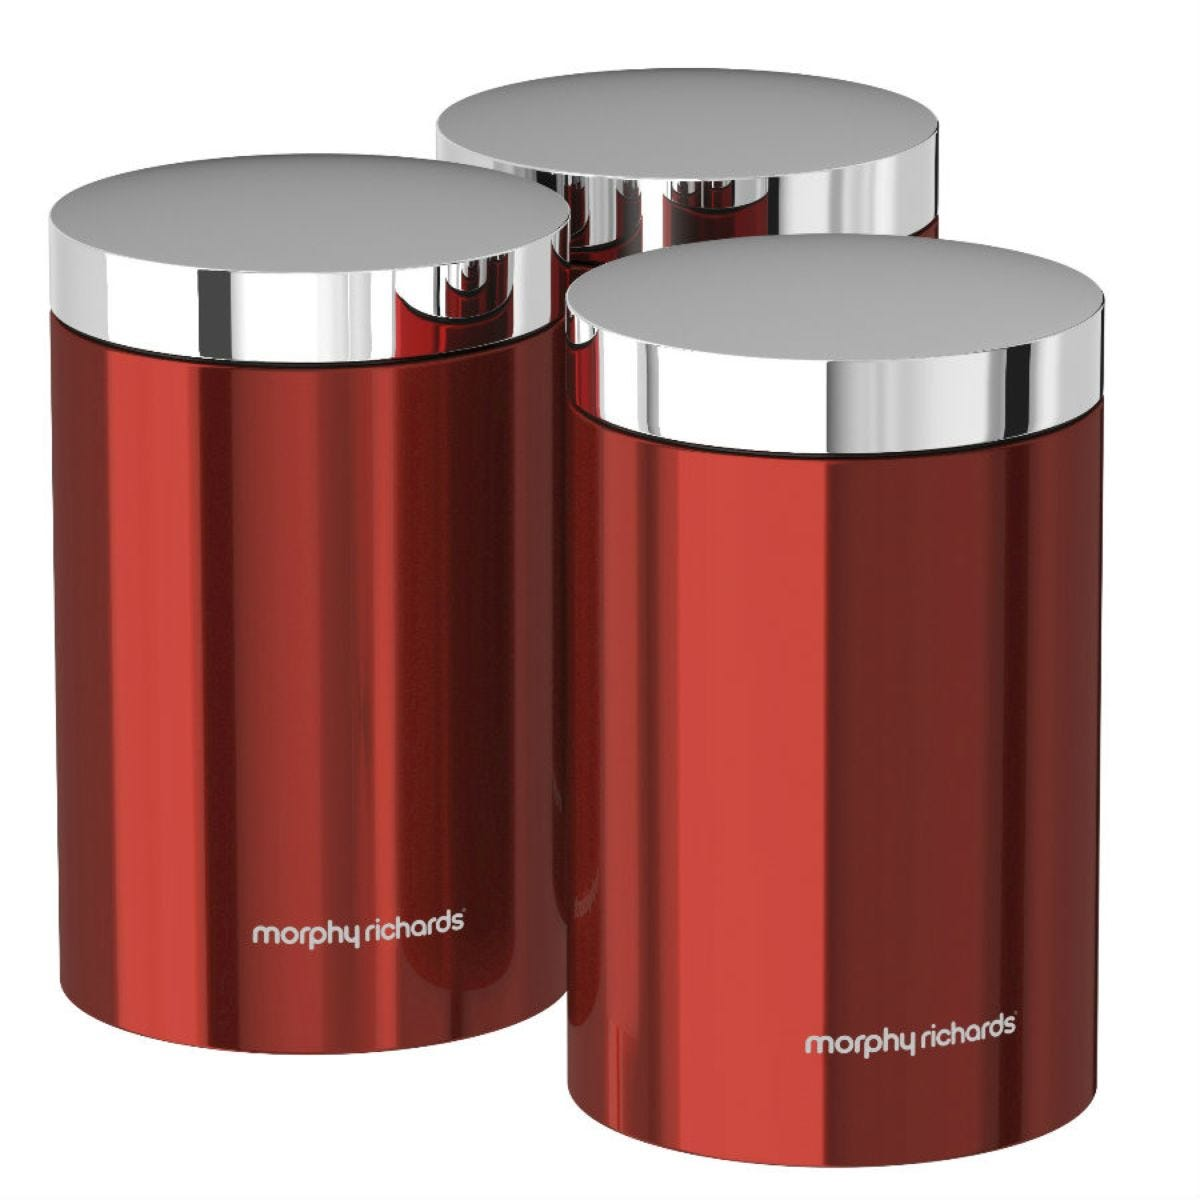 Morphy Richards Accents Set of 3 Storage Canisters - Red